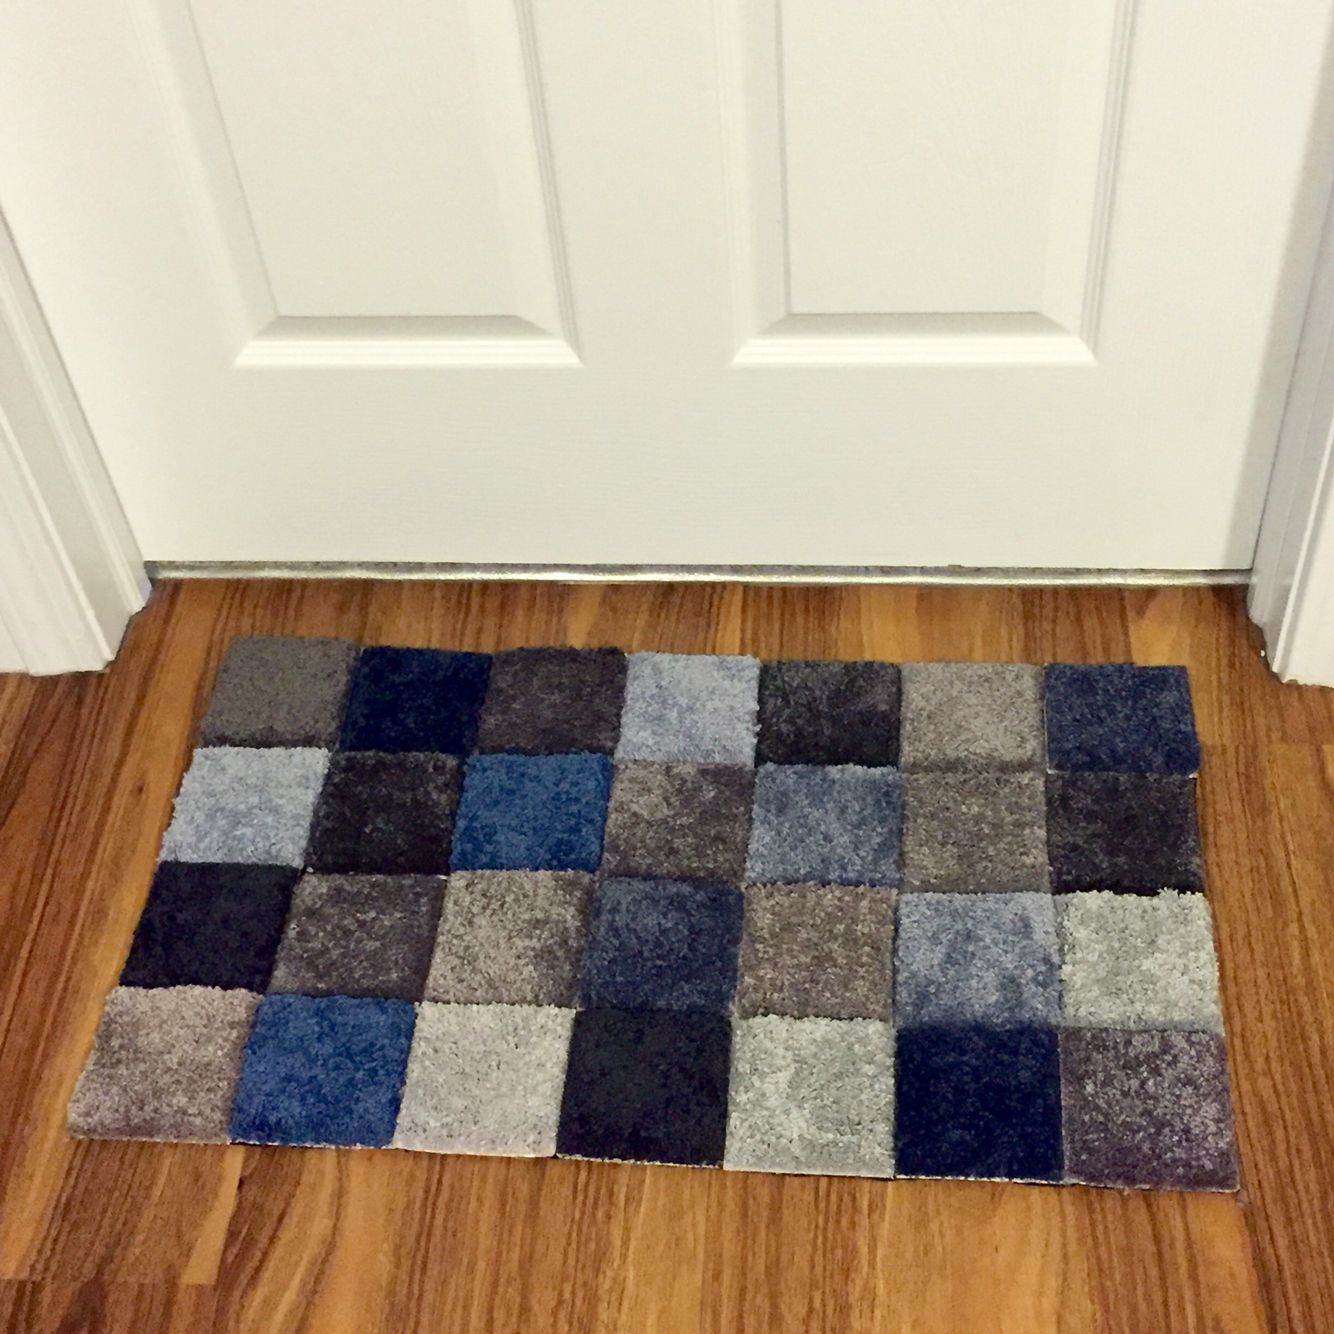 Carpet Sample Rug We Made For Free Just Need Duct Tape And Carpet